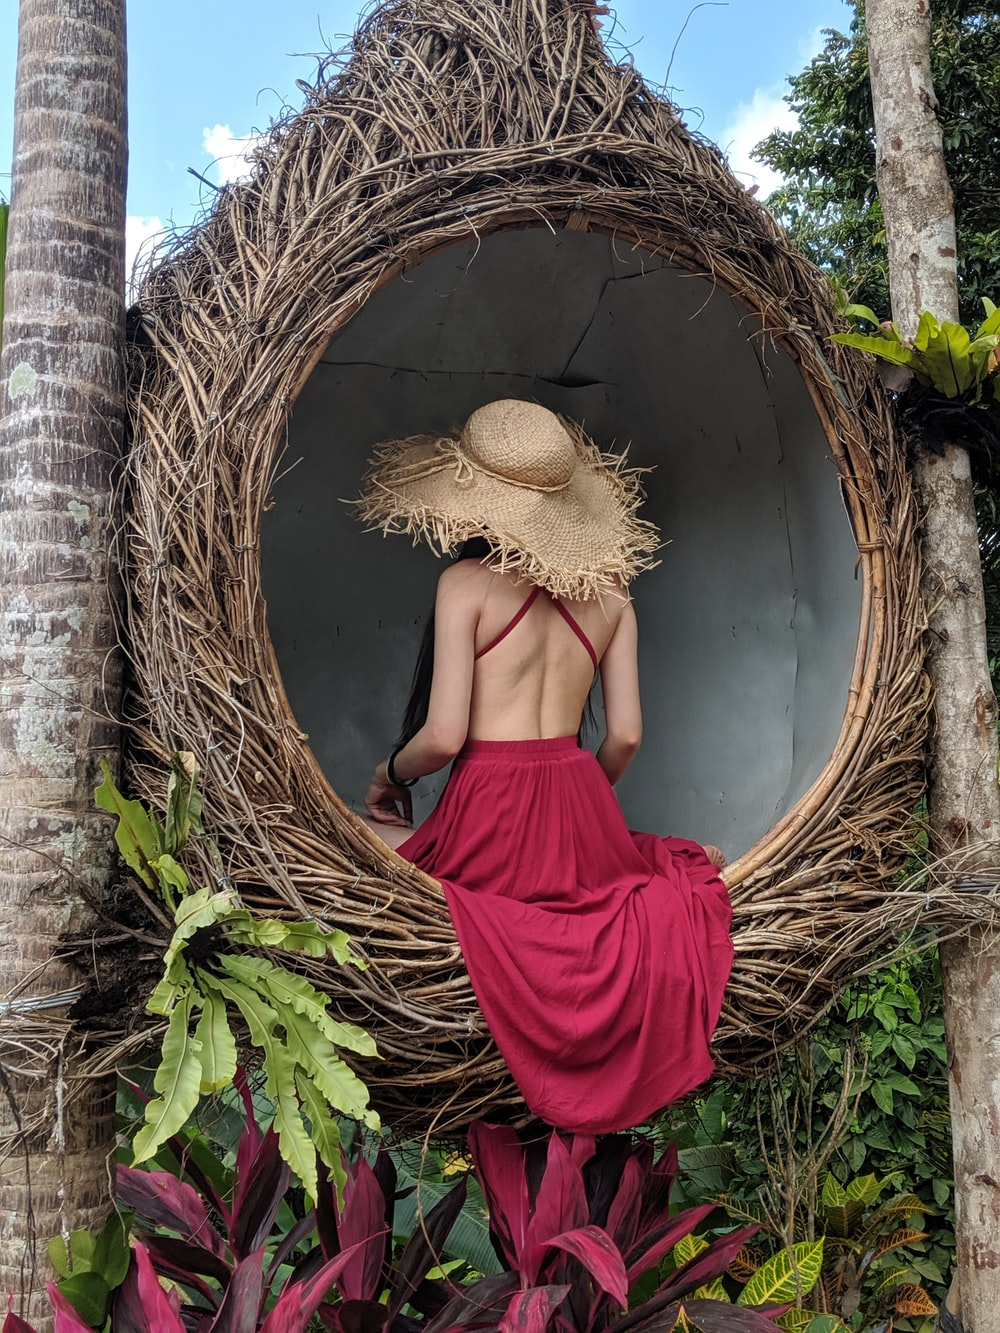 woman wearing pink backless dress sitting on wicker hanging chair